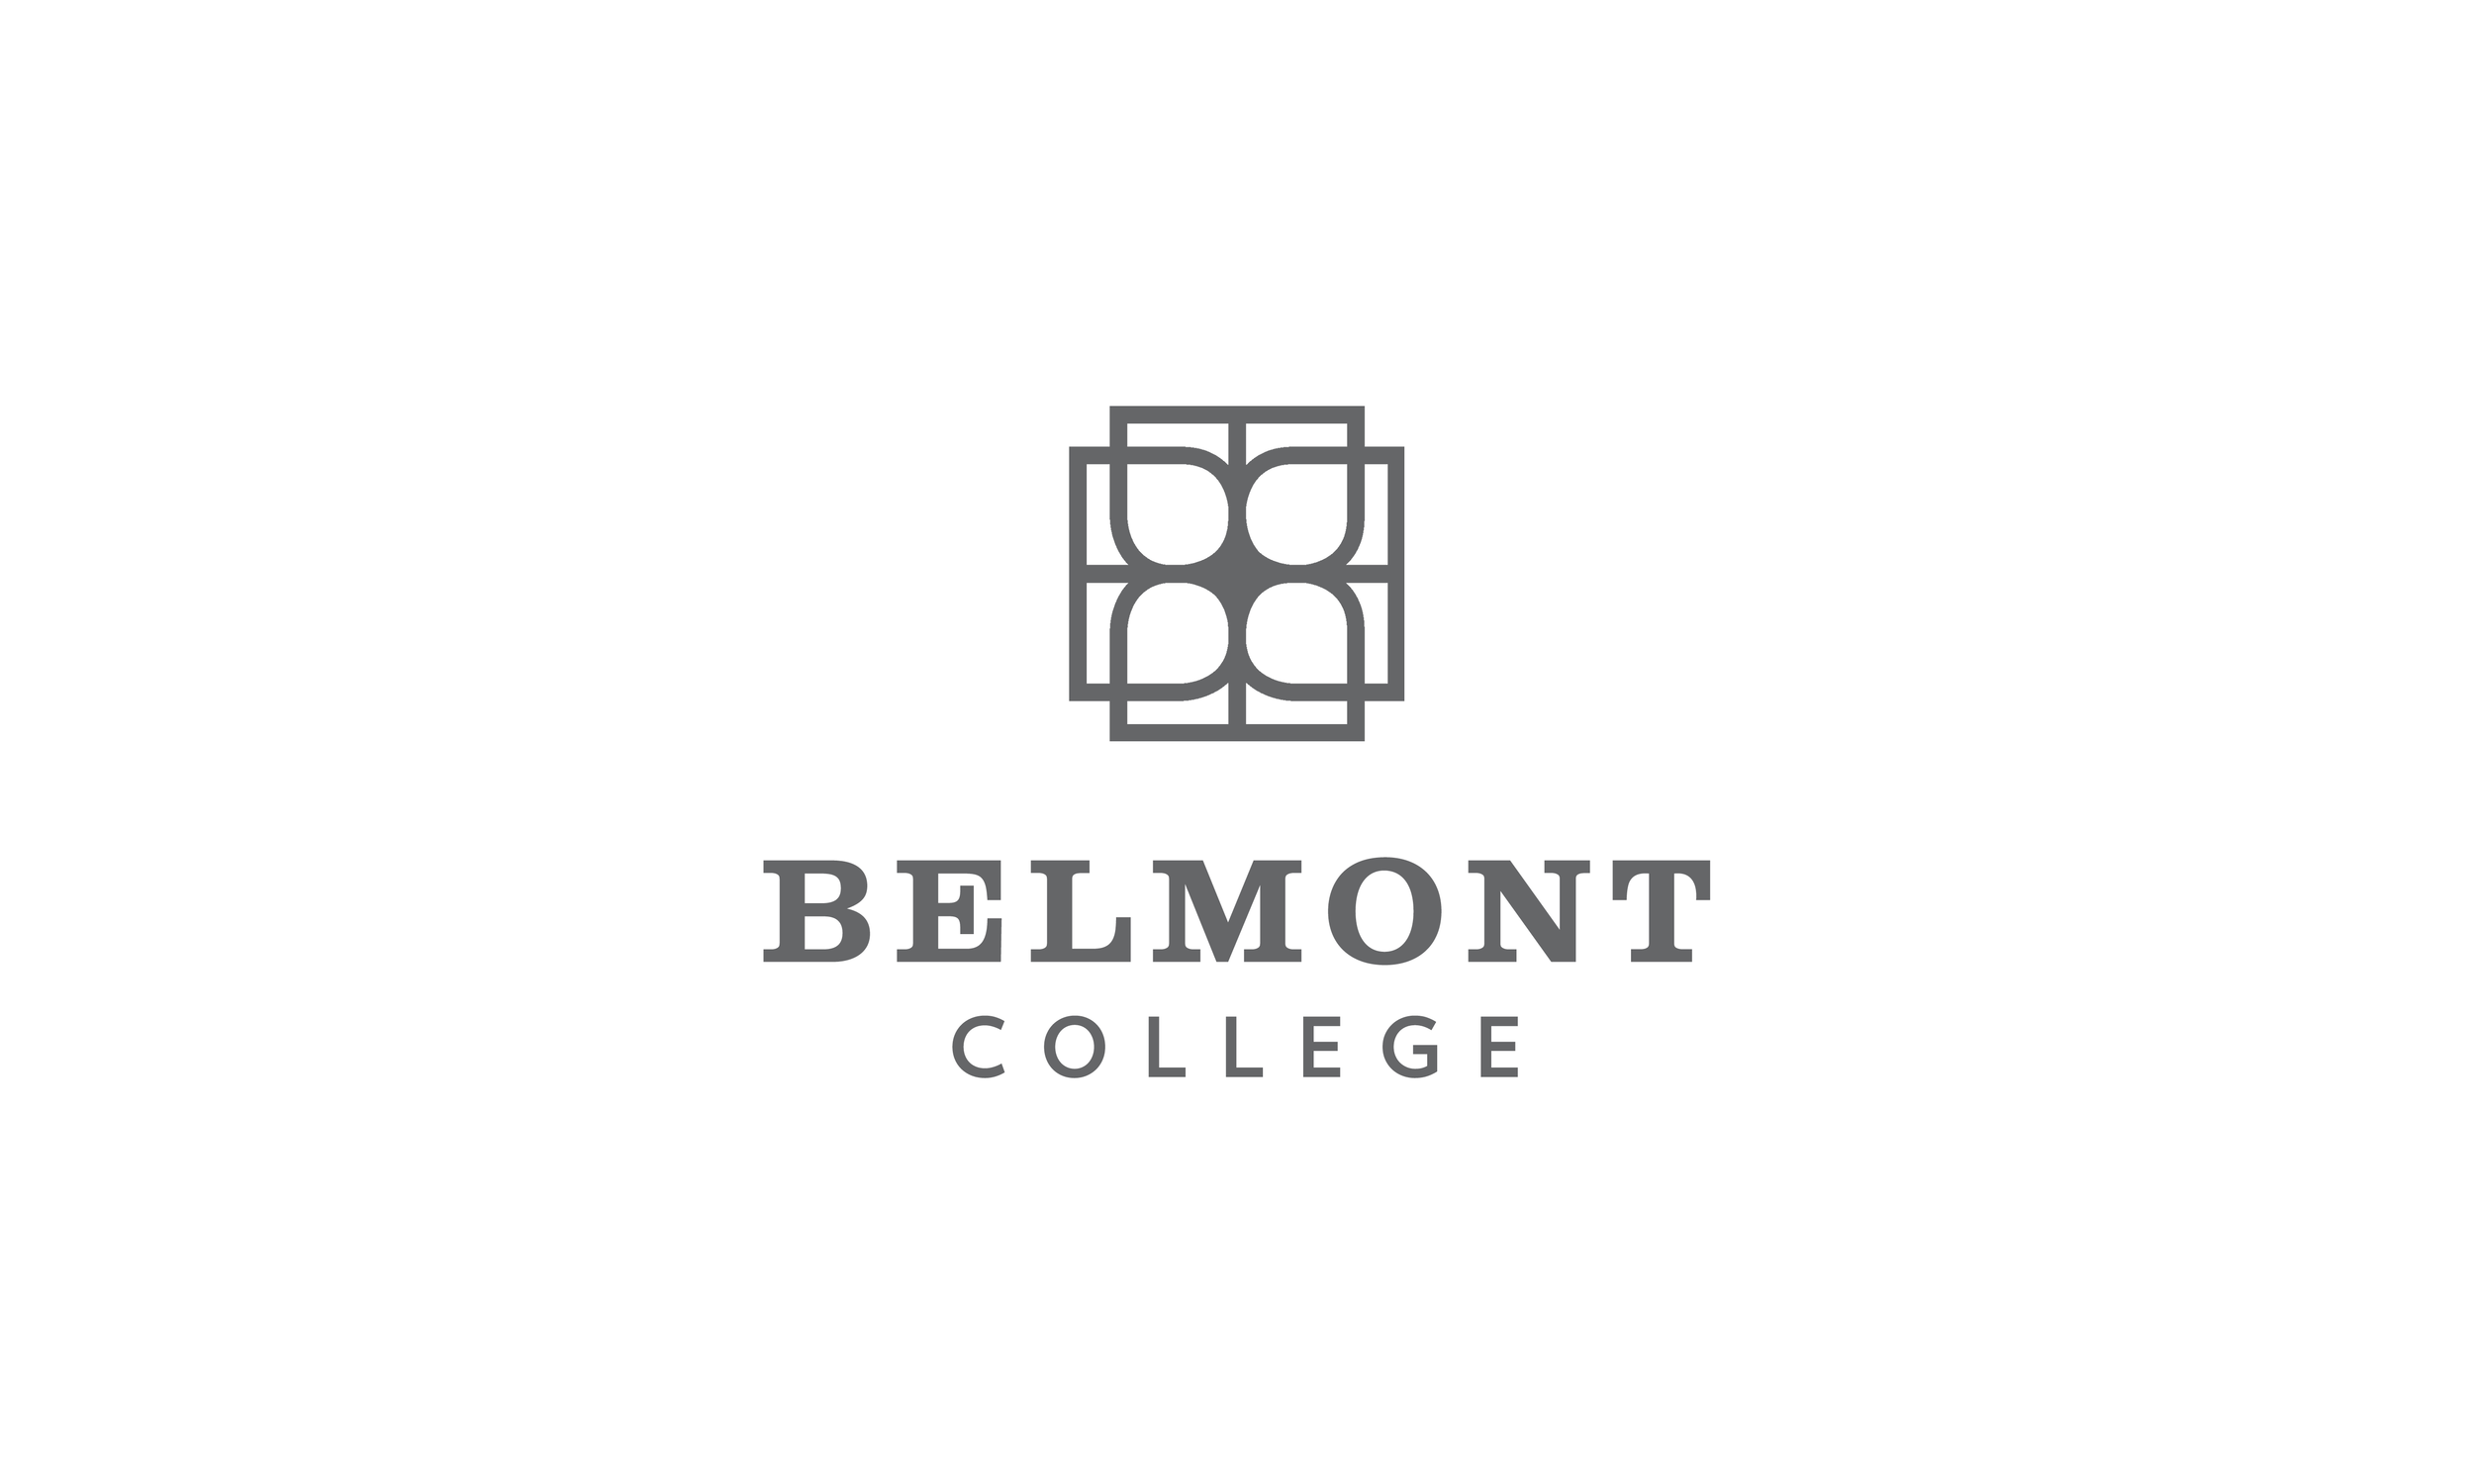 belmont-college-logo.png